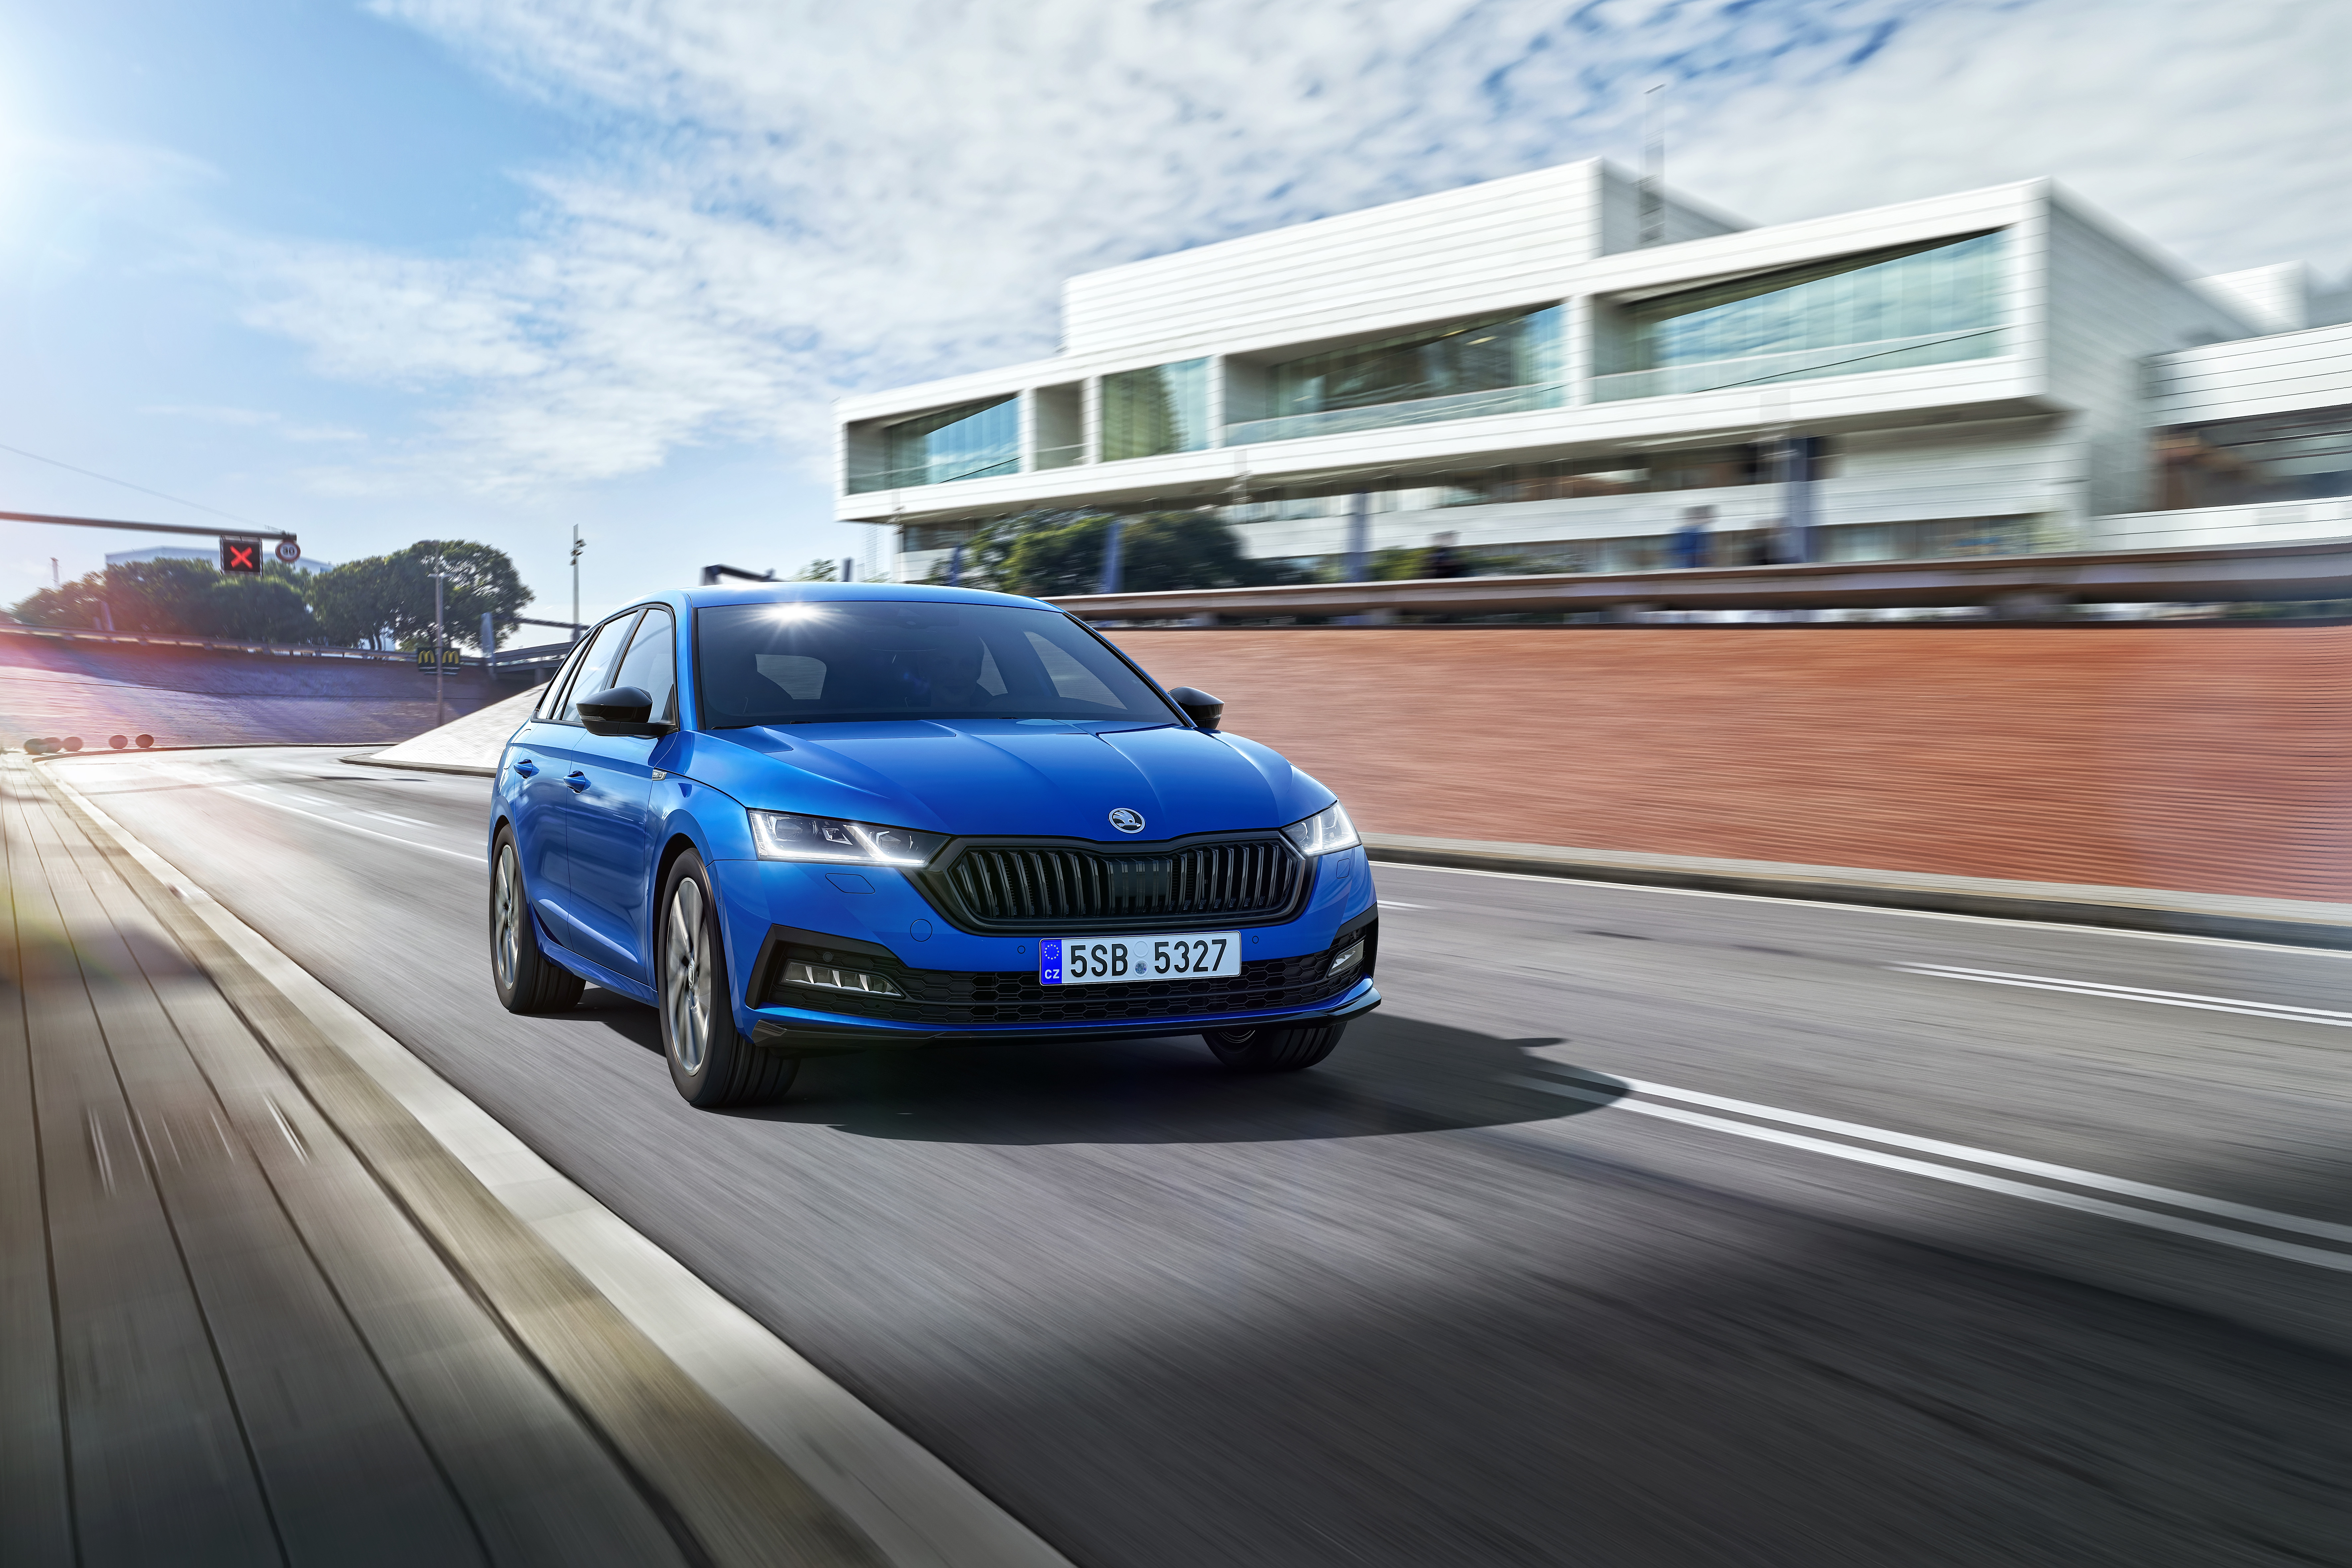 SKODA OCTAVIA available as SPORTLINE version for the first time - Image 2